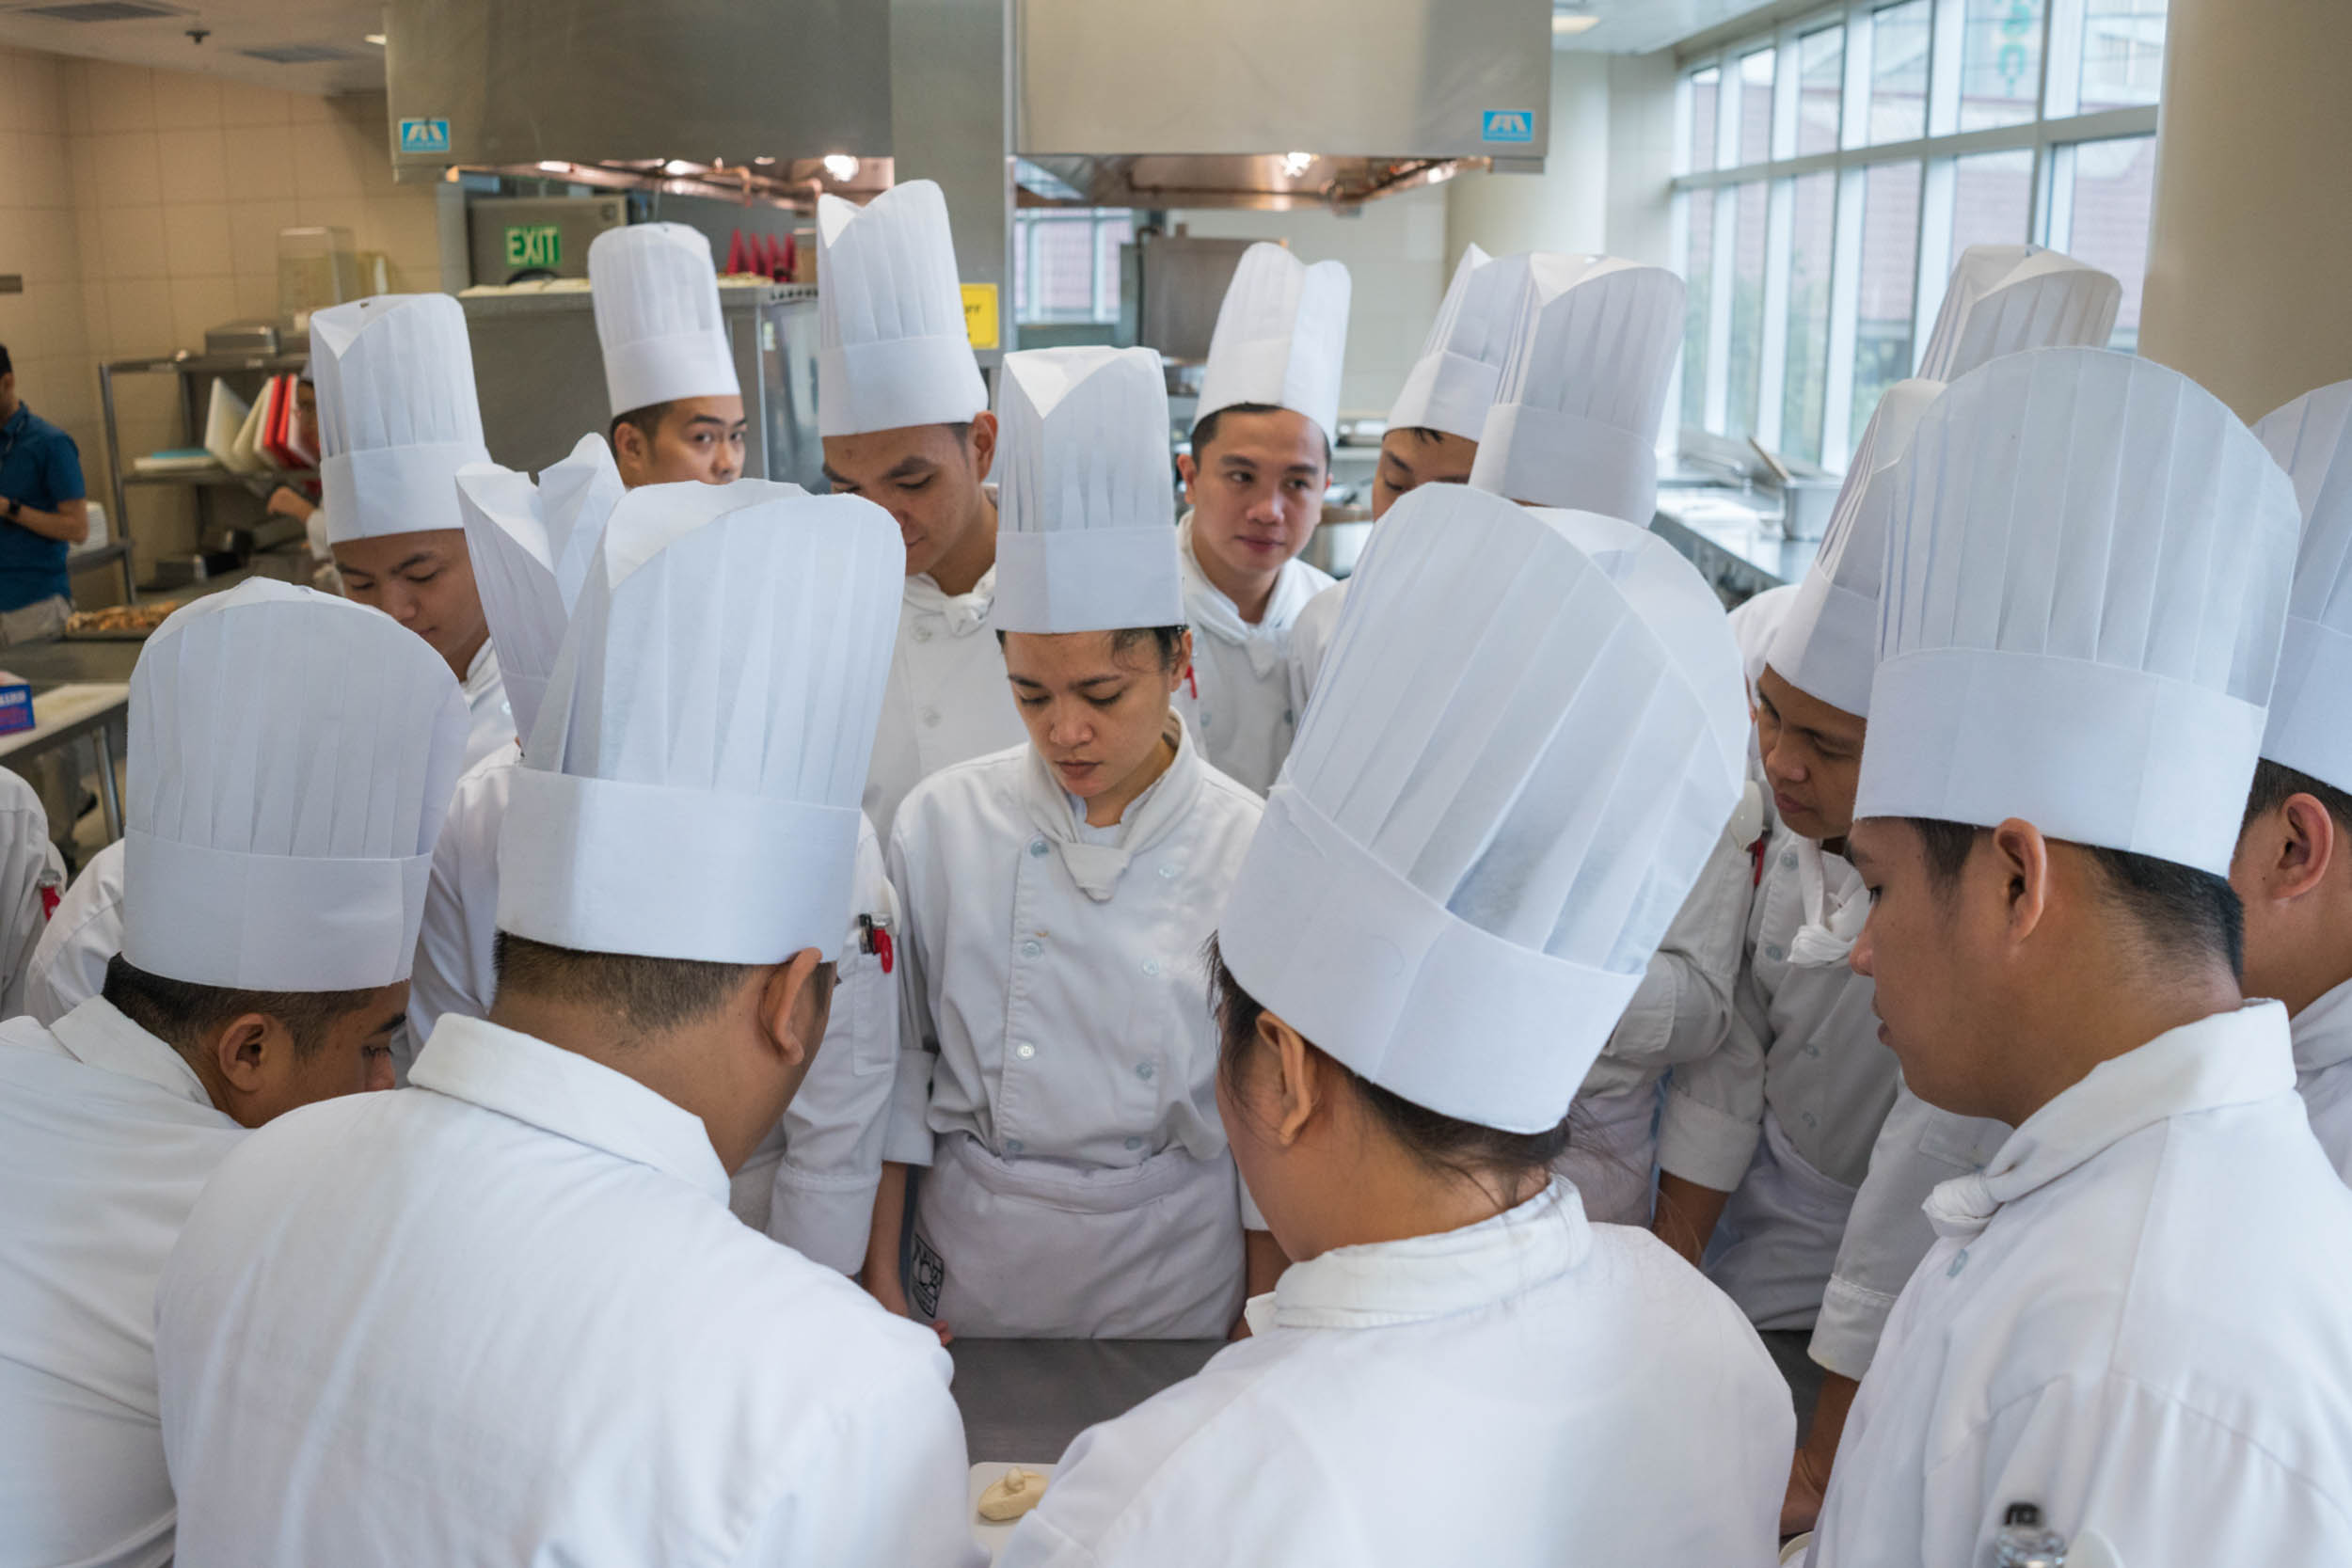 For decades the Philippine government has facilitated migration abroad as a way to develop the country. A sprawling trade school industry helps give Filipinos needed skills. Chefs prepare for jobs in hotels and restaurants.